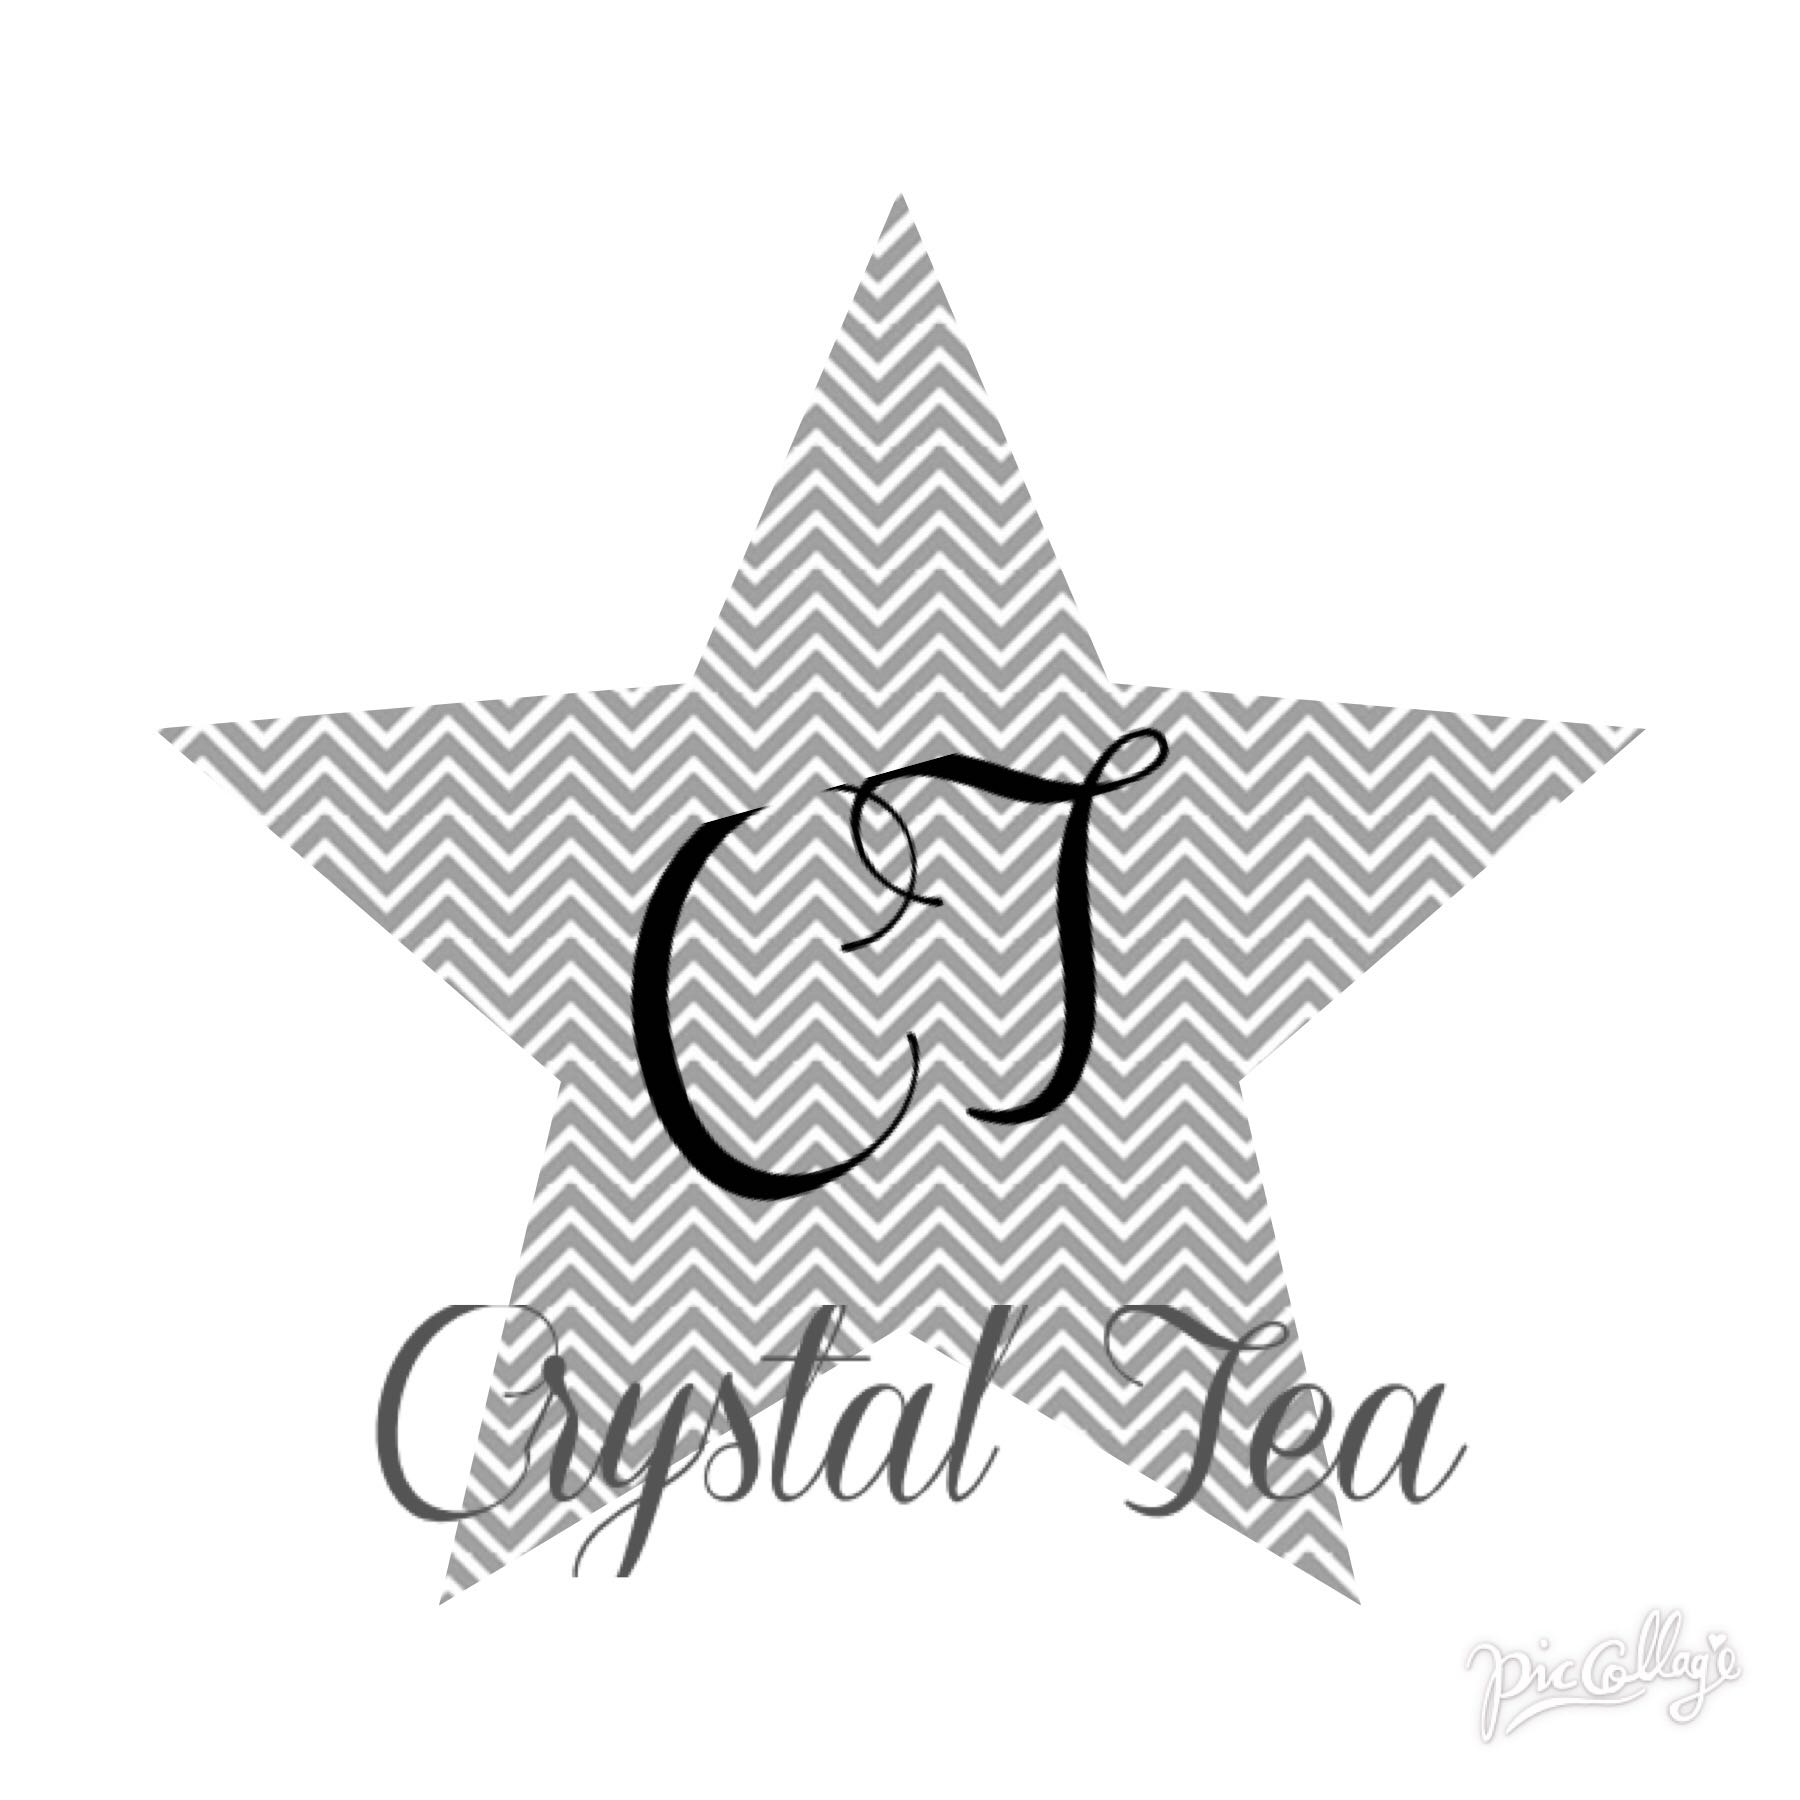 crystal_tea